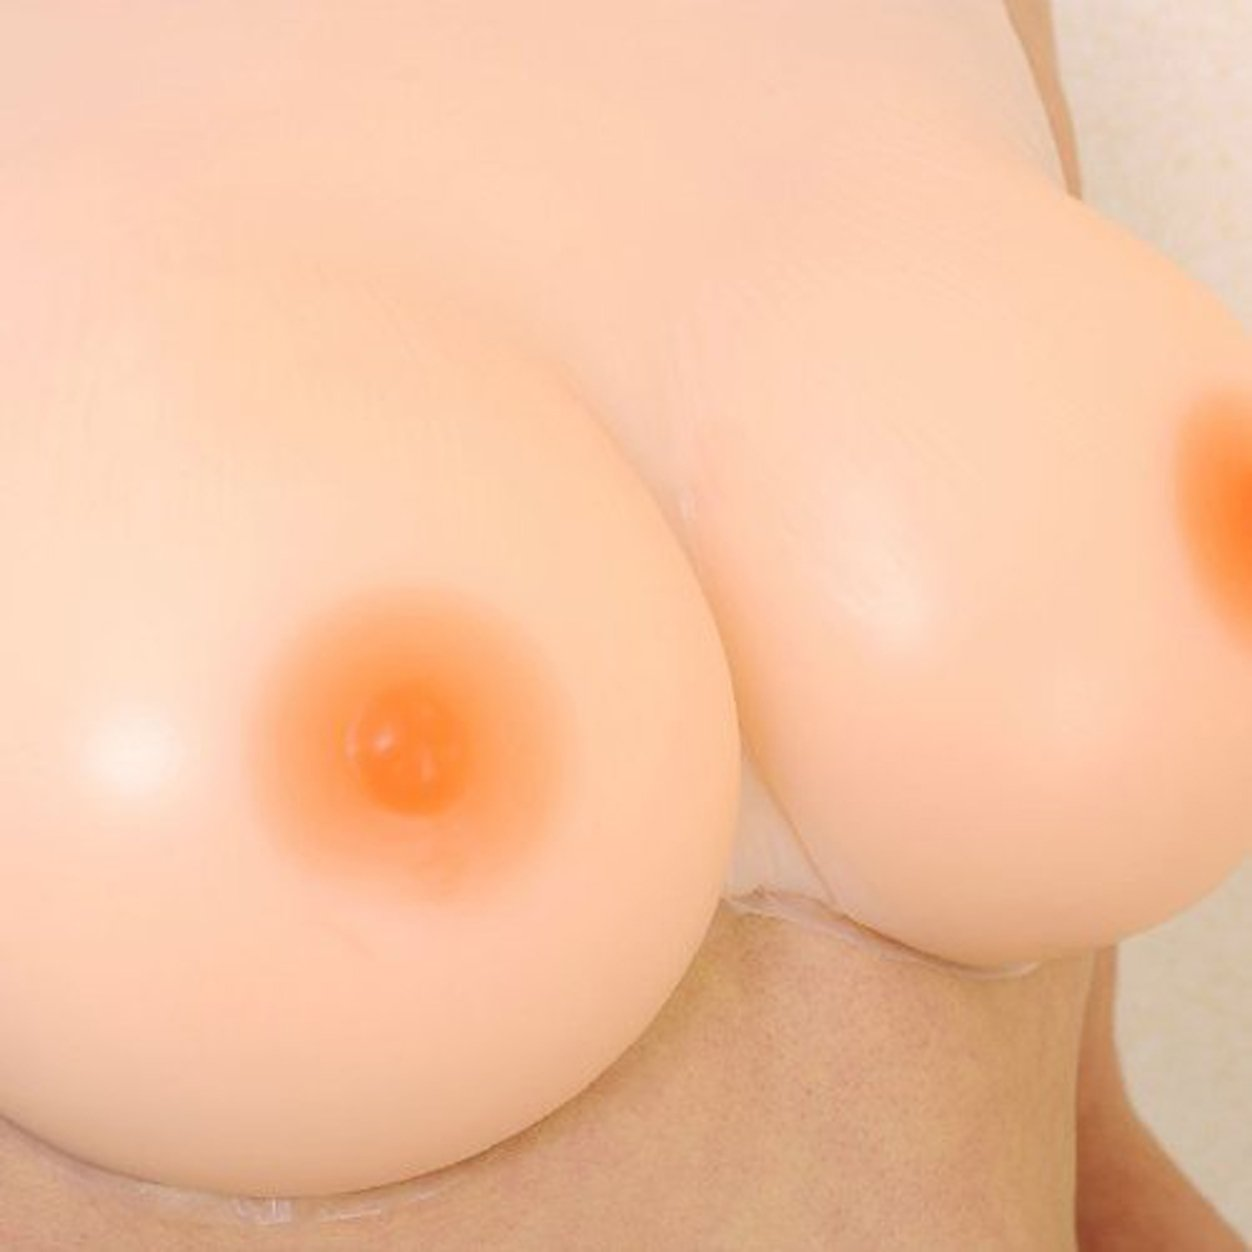 1600gr Silicone Breast Forms Size 34C/36B/38A/ ((size 6)by fake boobs for Cross dresser/ False breasts/Transgender/Mastectomy (1600g)